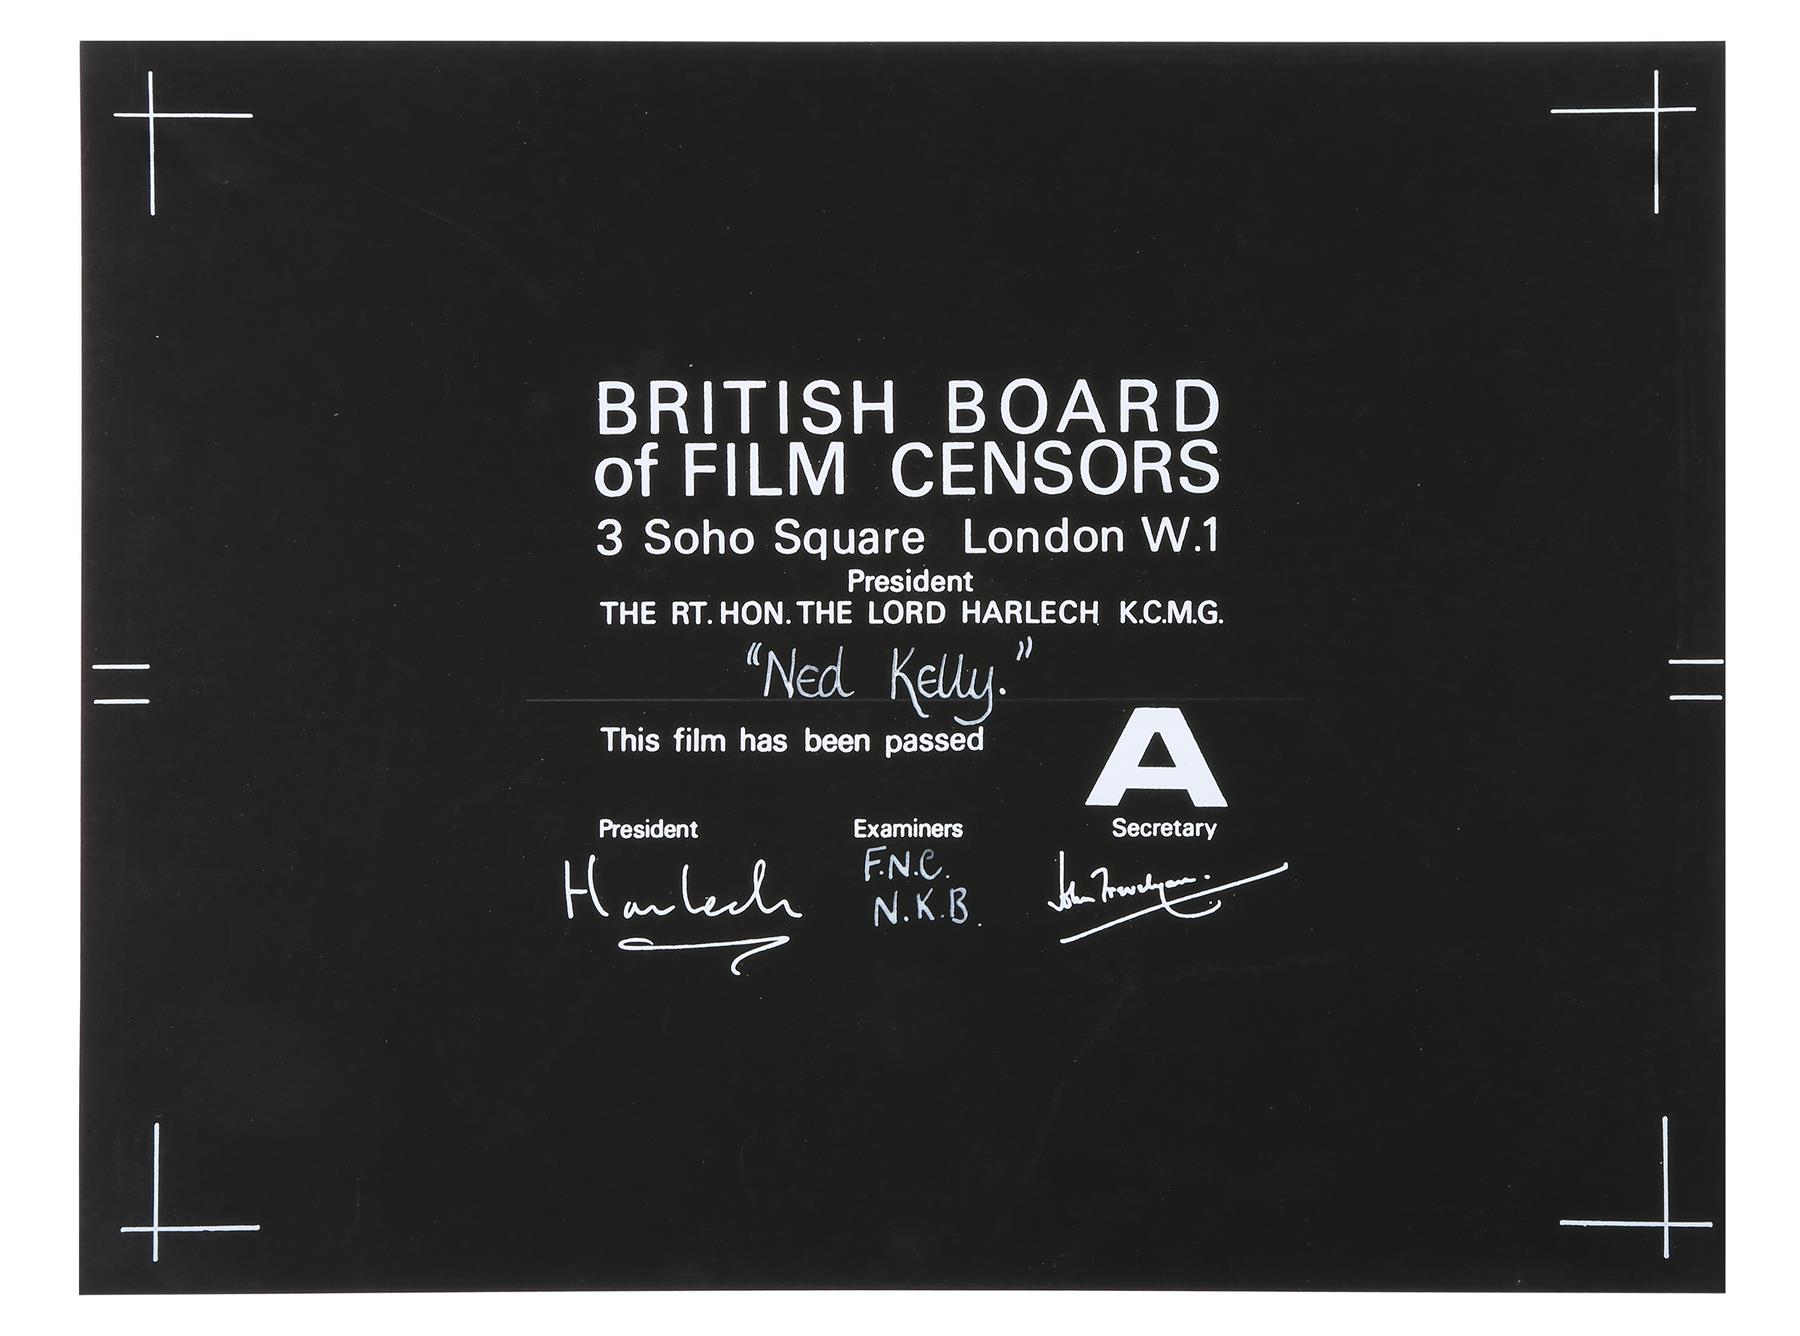 VARIOUS PRODUCTIONS - BBFC Certificates of British Classics - Image 4 of 6